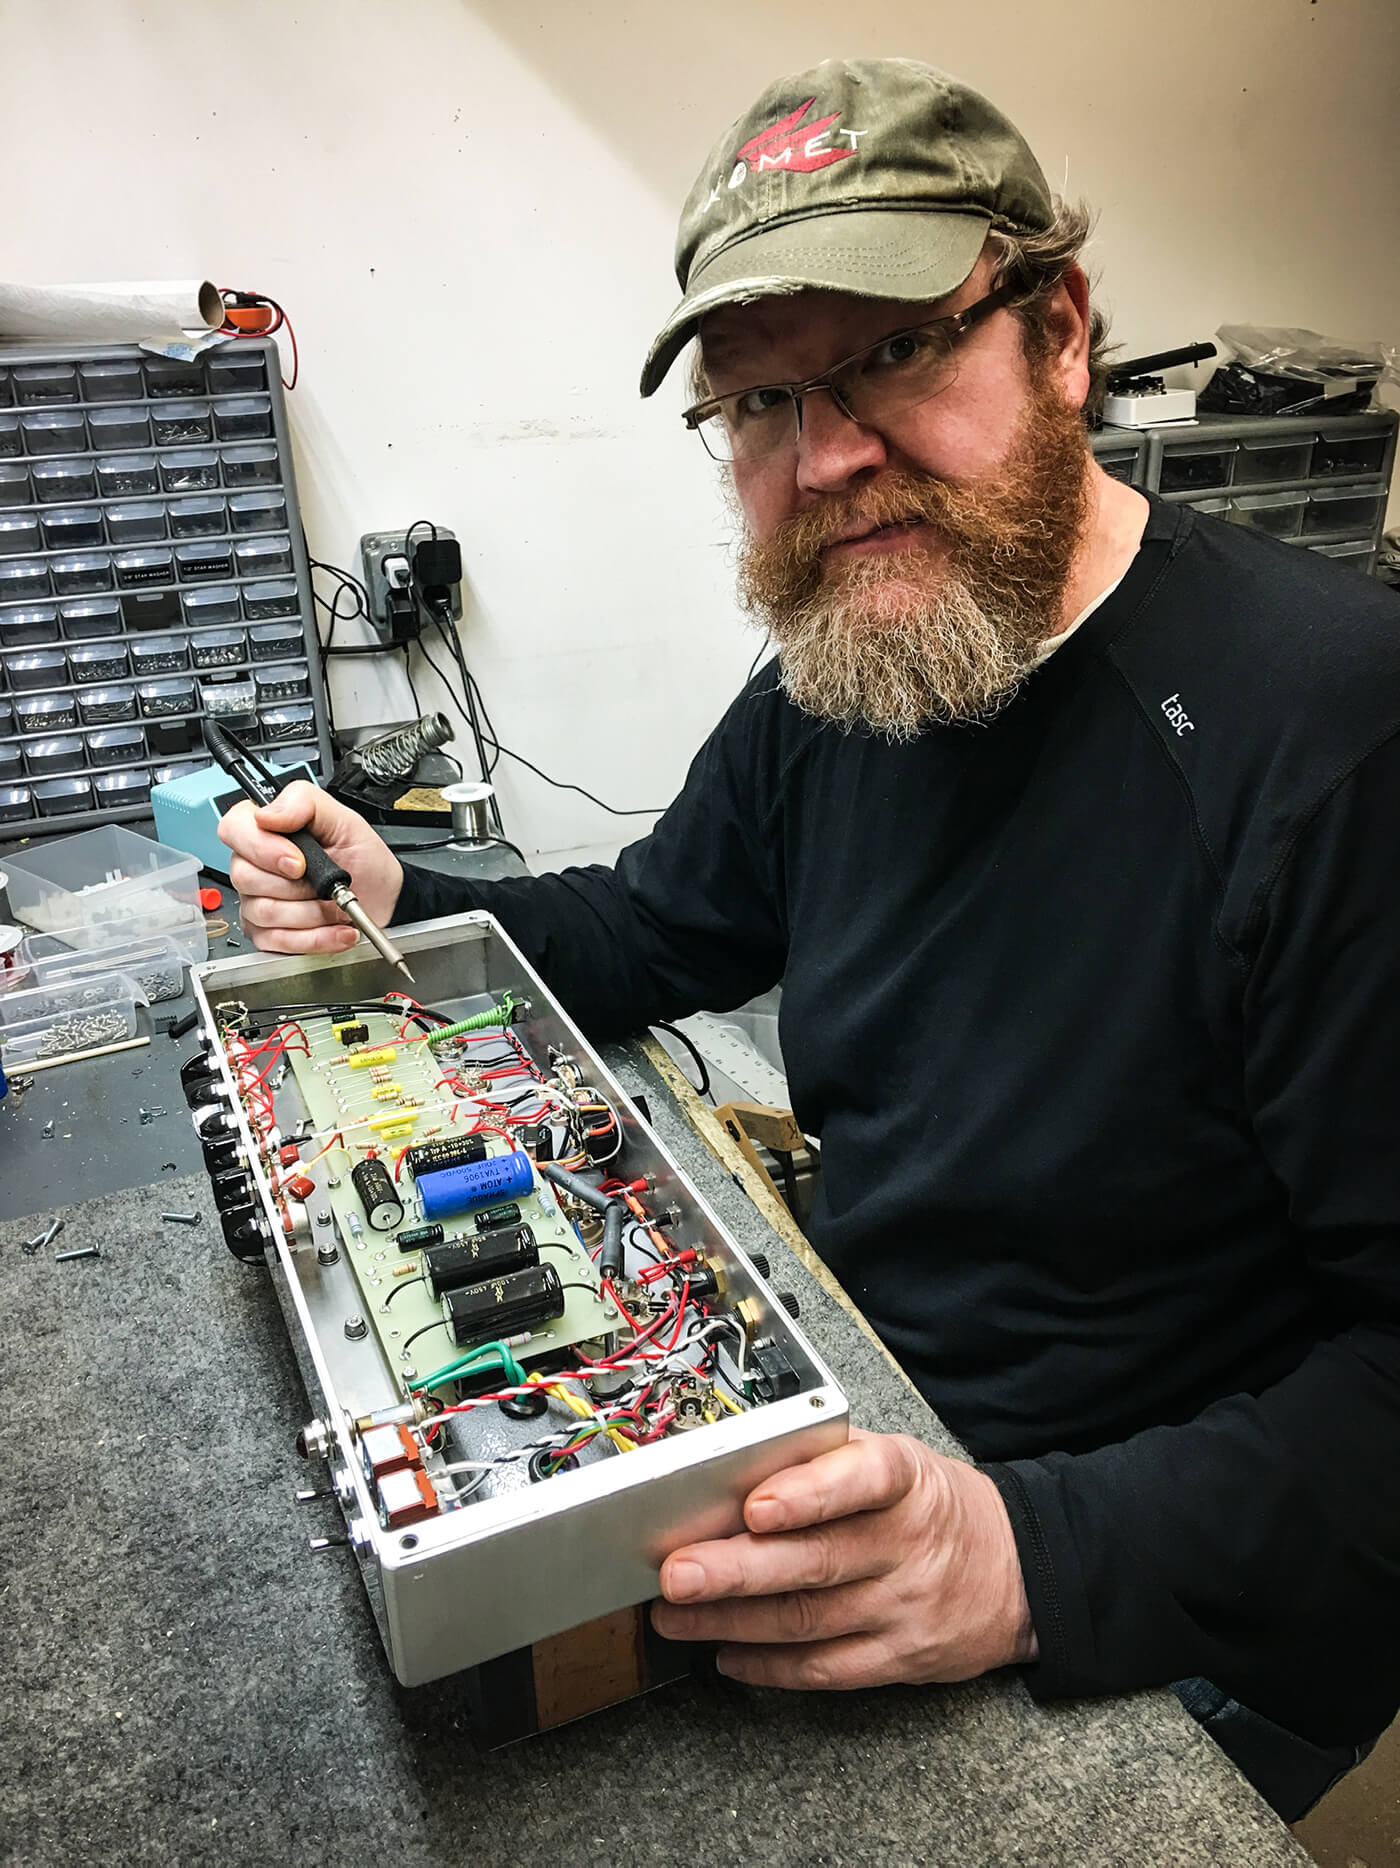 Interview Komet Amps components and wiring